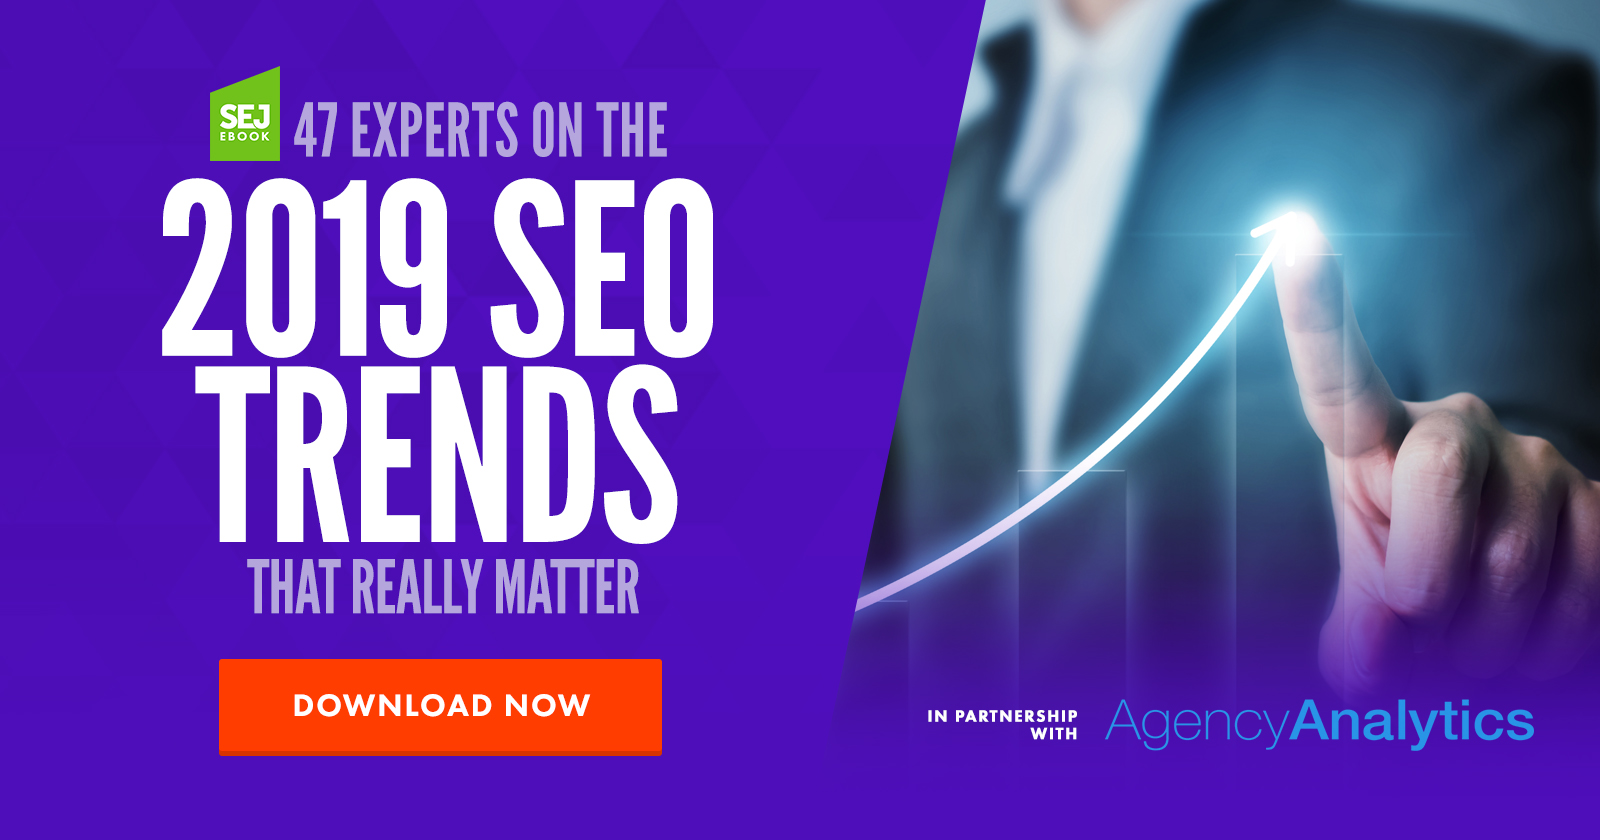 47 Experts on the 2019 SEO Trends That Really Matter [Ebook]